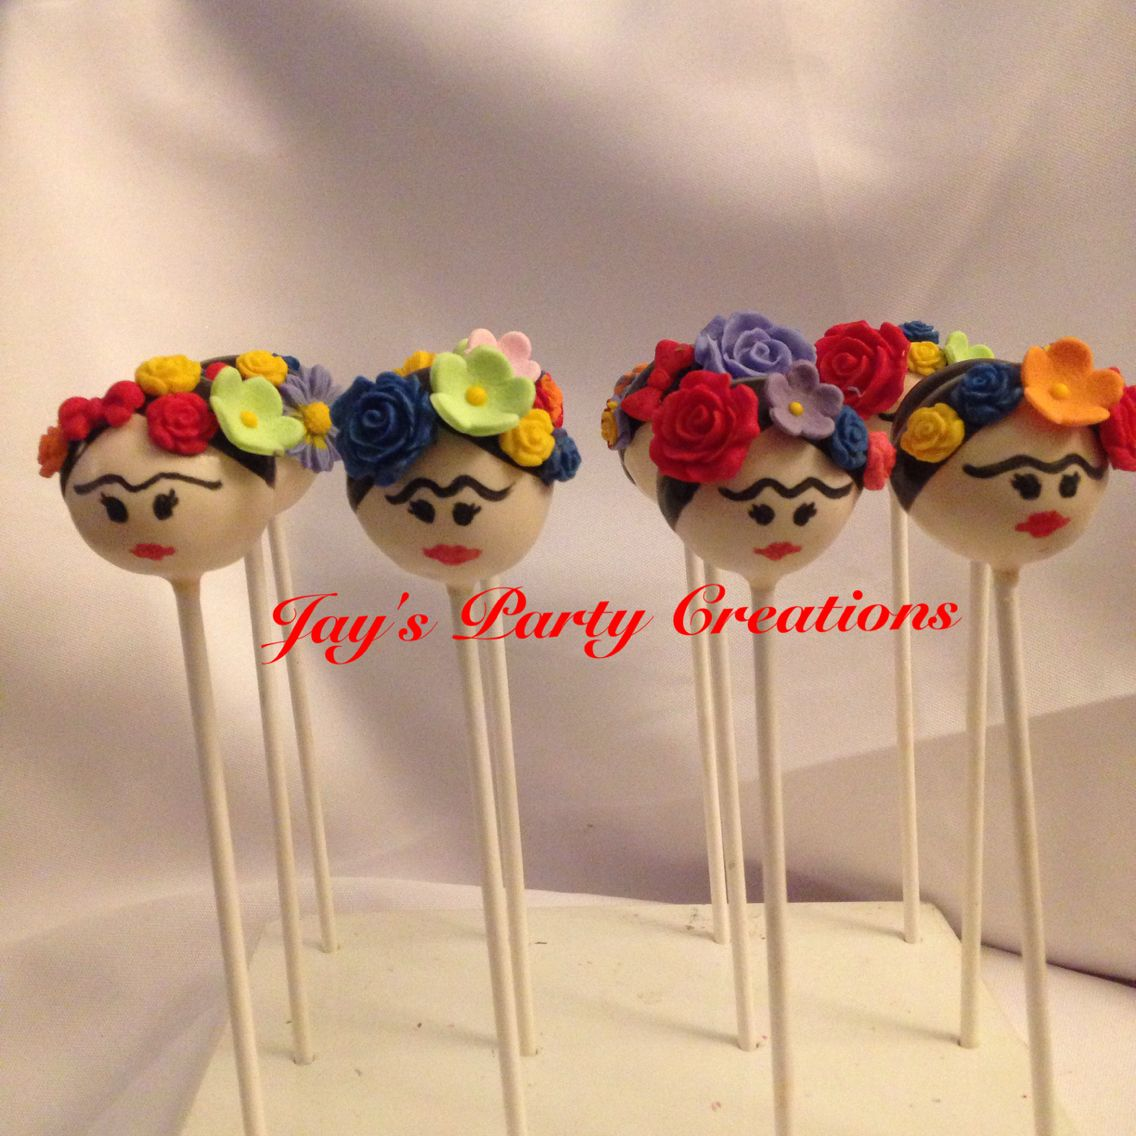 frida kahlo cake pops festliche s ssigkeiten pinterest s igkeiten essensideen und backen. Black Bedroom Furniture Sets. Home Design Ideas